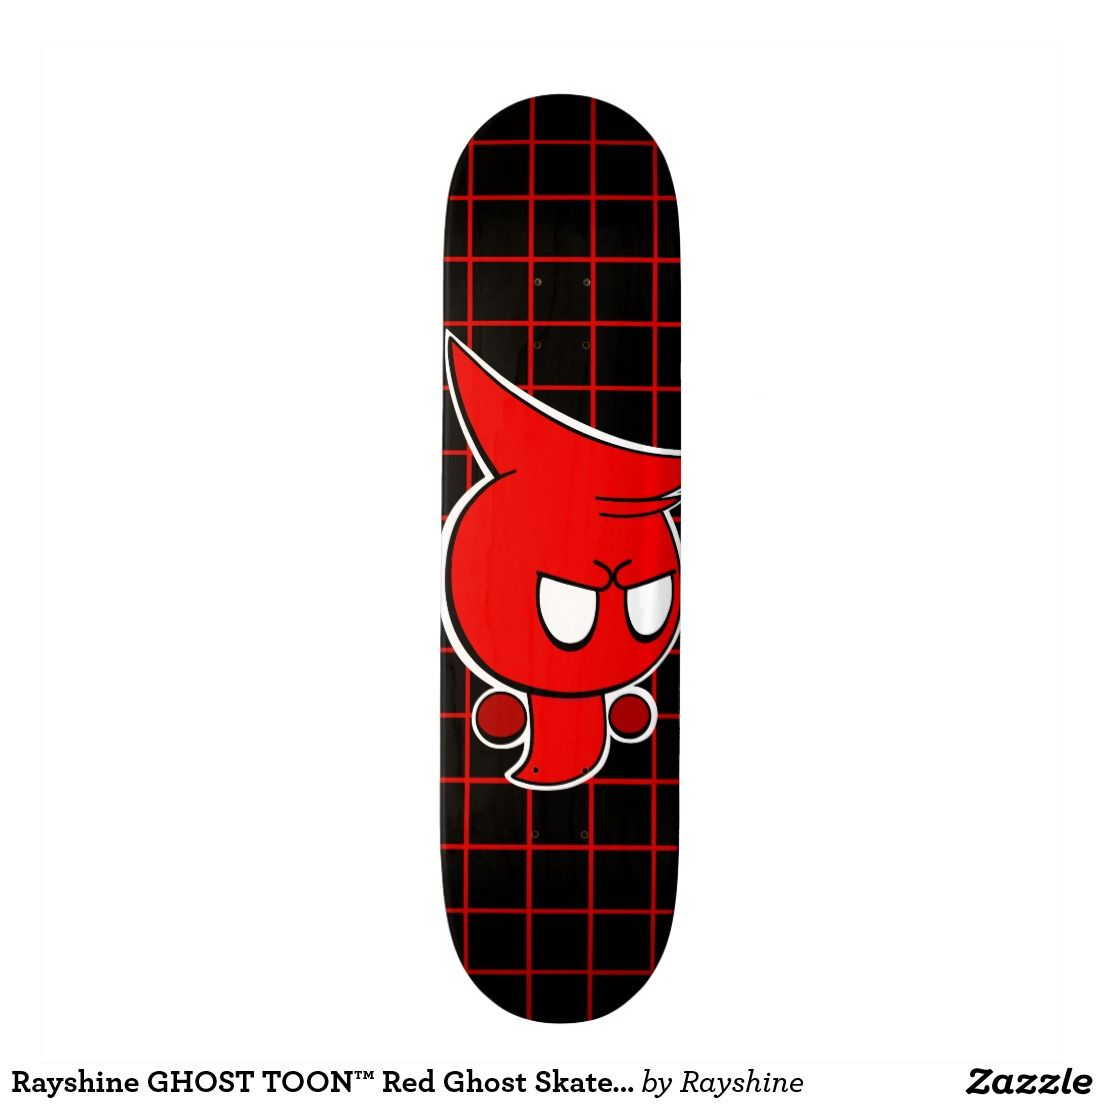 Rayshine GHOST TOON™ Red Ghost Skateboard Deck  #skater #skaterlife #skate #decks #decks4sale #cartoon #ghost #red #black #zazzle #skateboards #shop